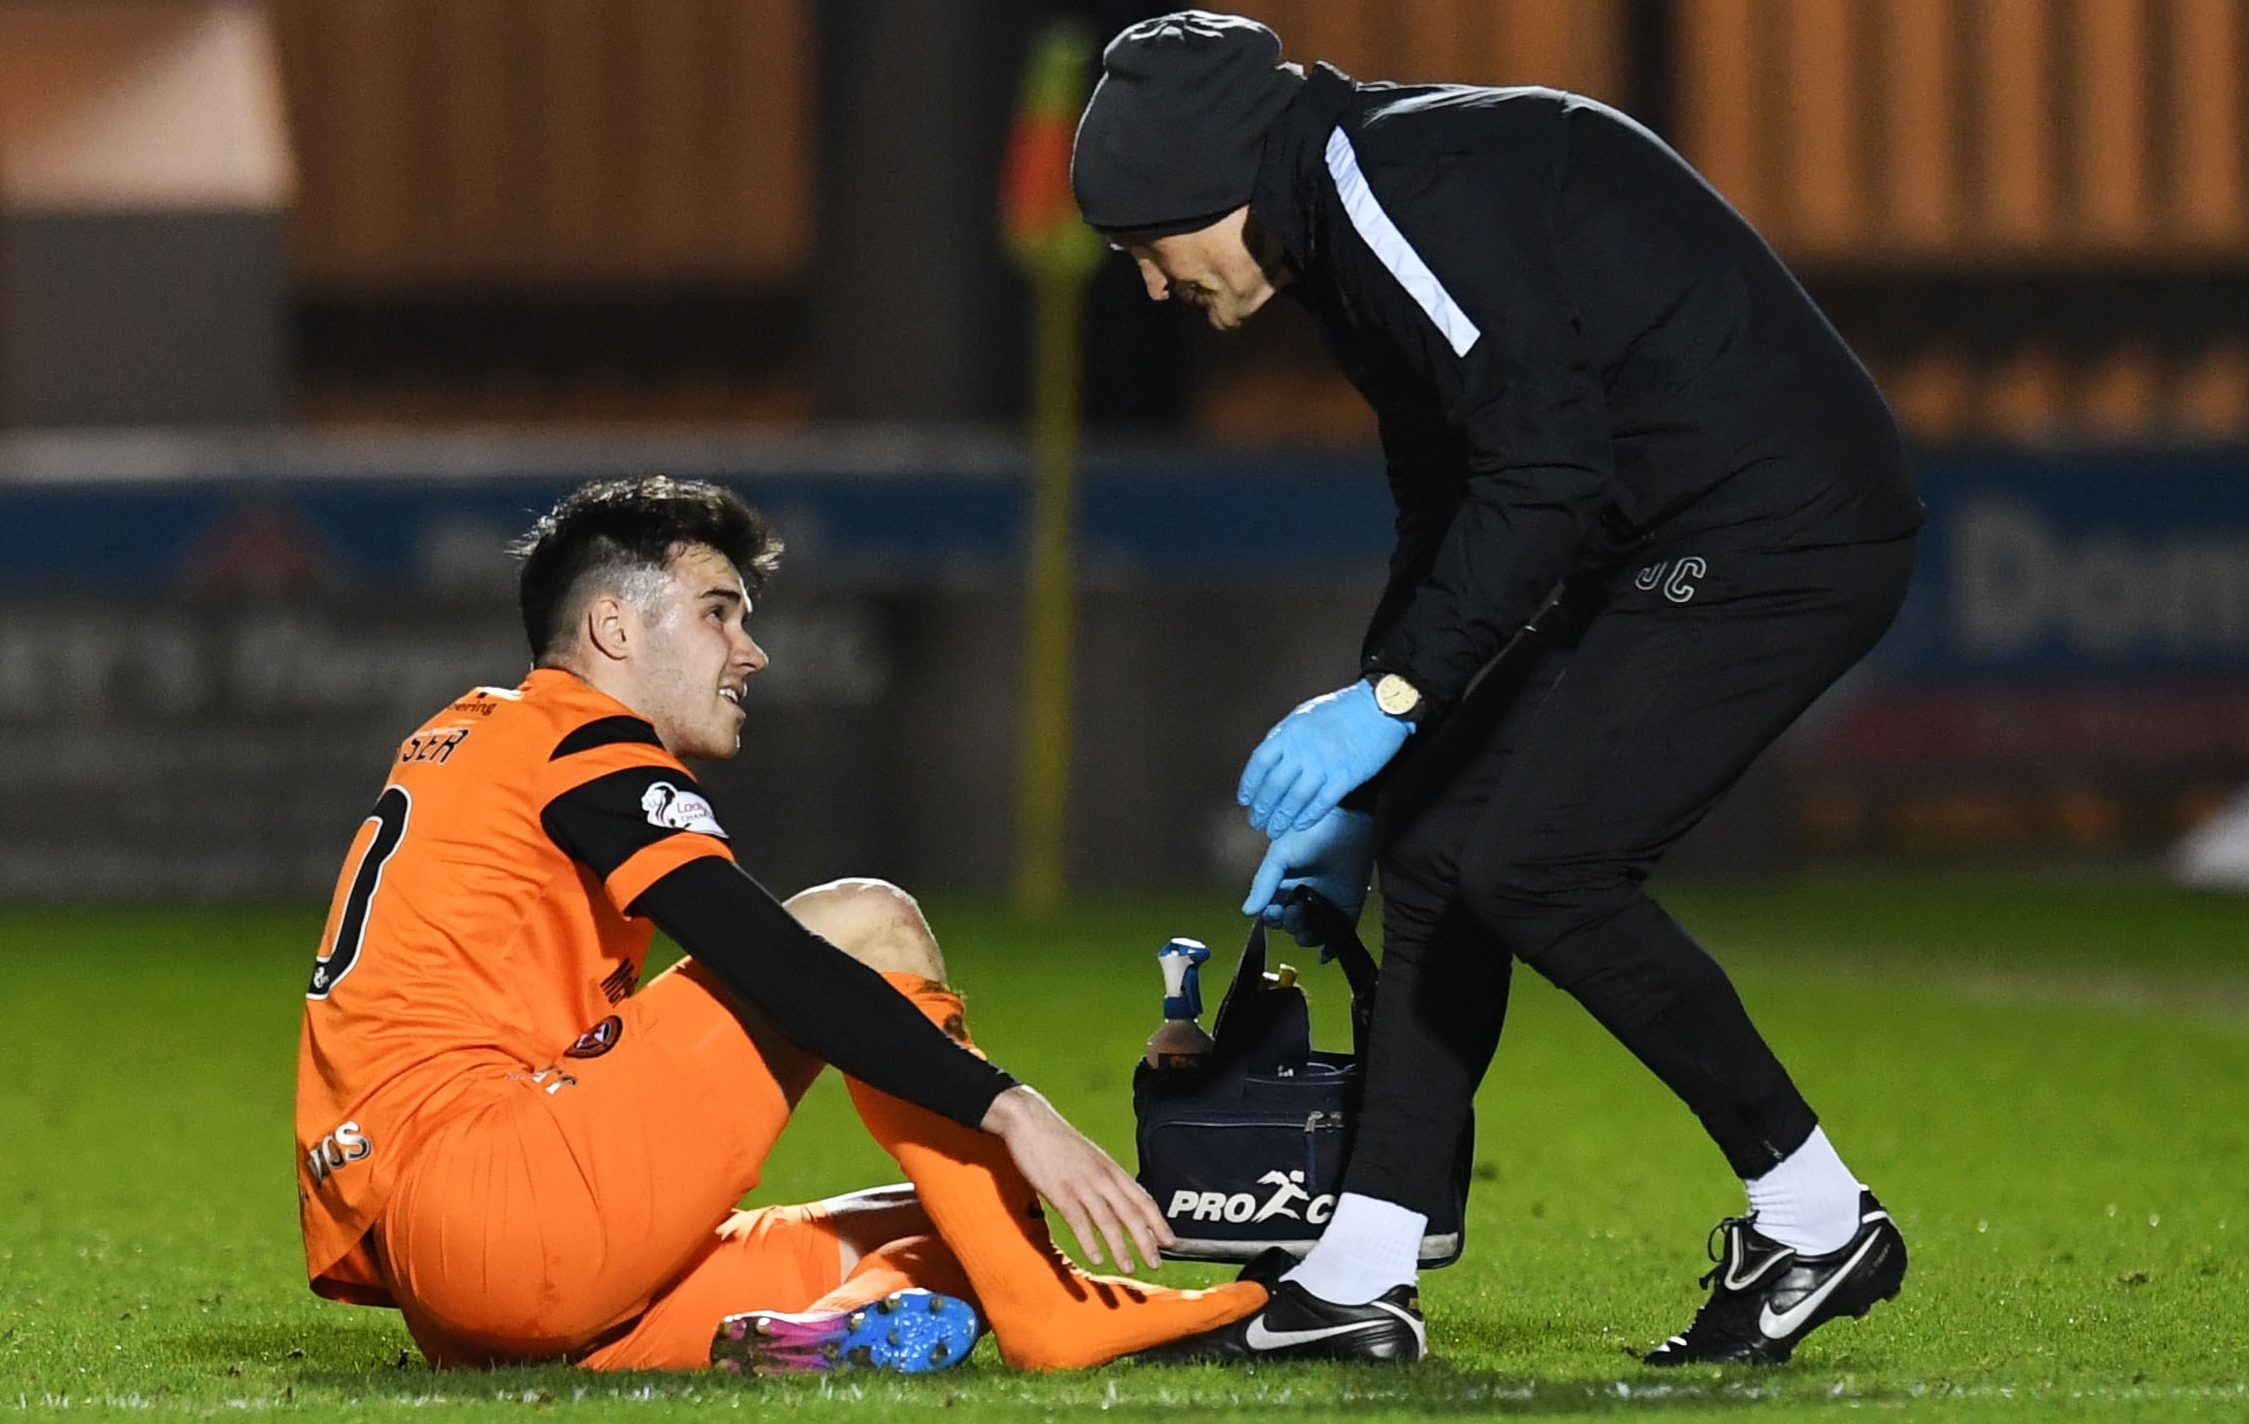 Scott Fraser receiving treatment from the club physio.